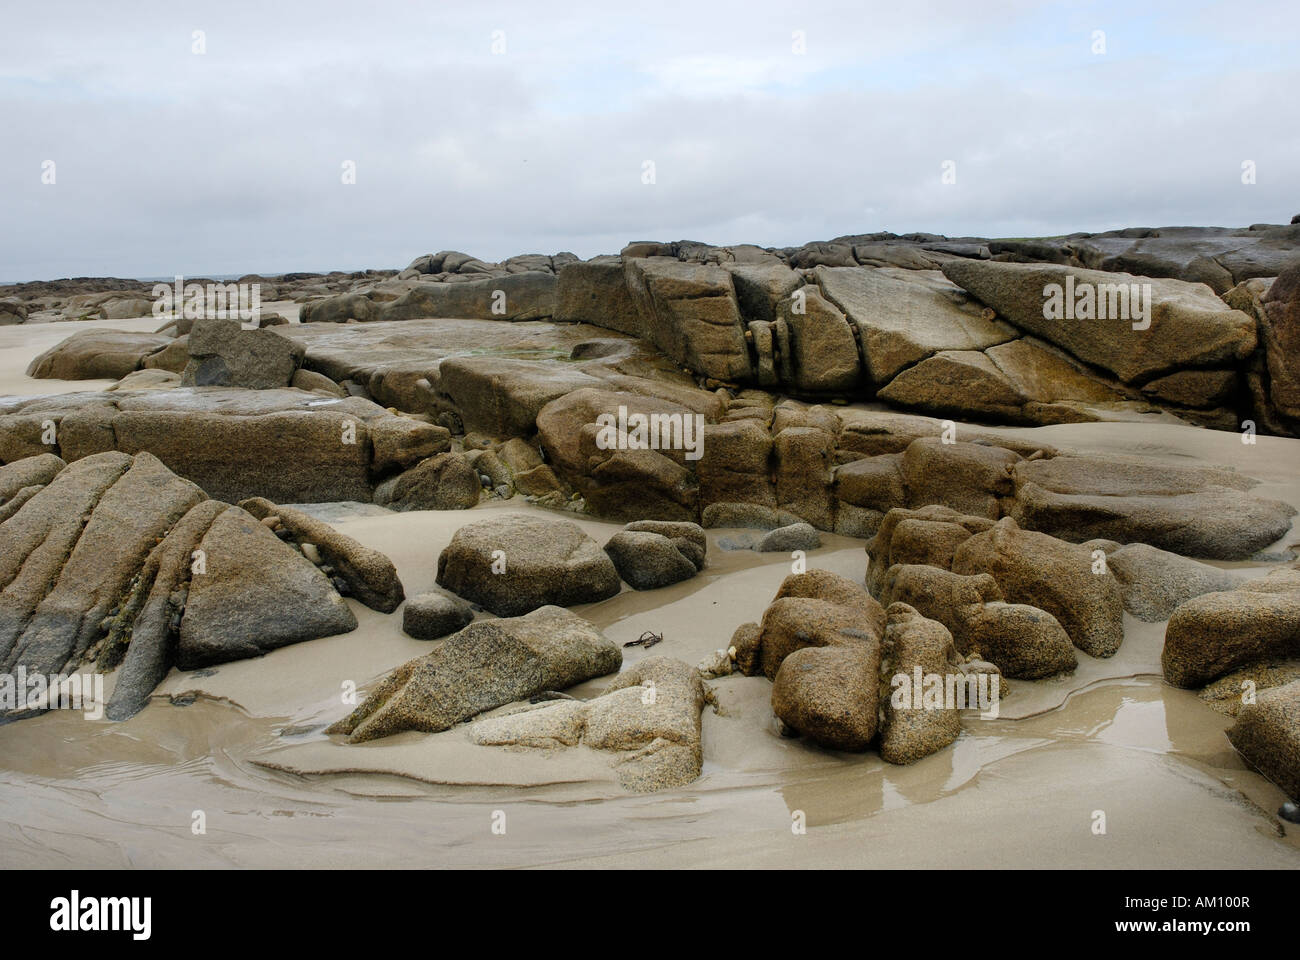 Granite rocks in tidal zone of sandy beach at the Altanic coast of Donegal on a foggy day, Ireland Stock Photo